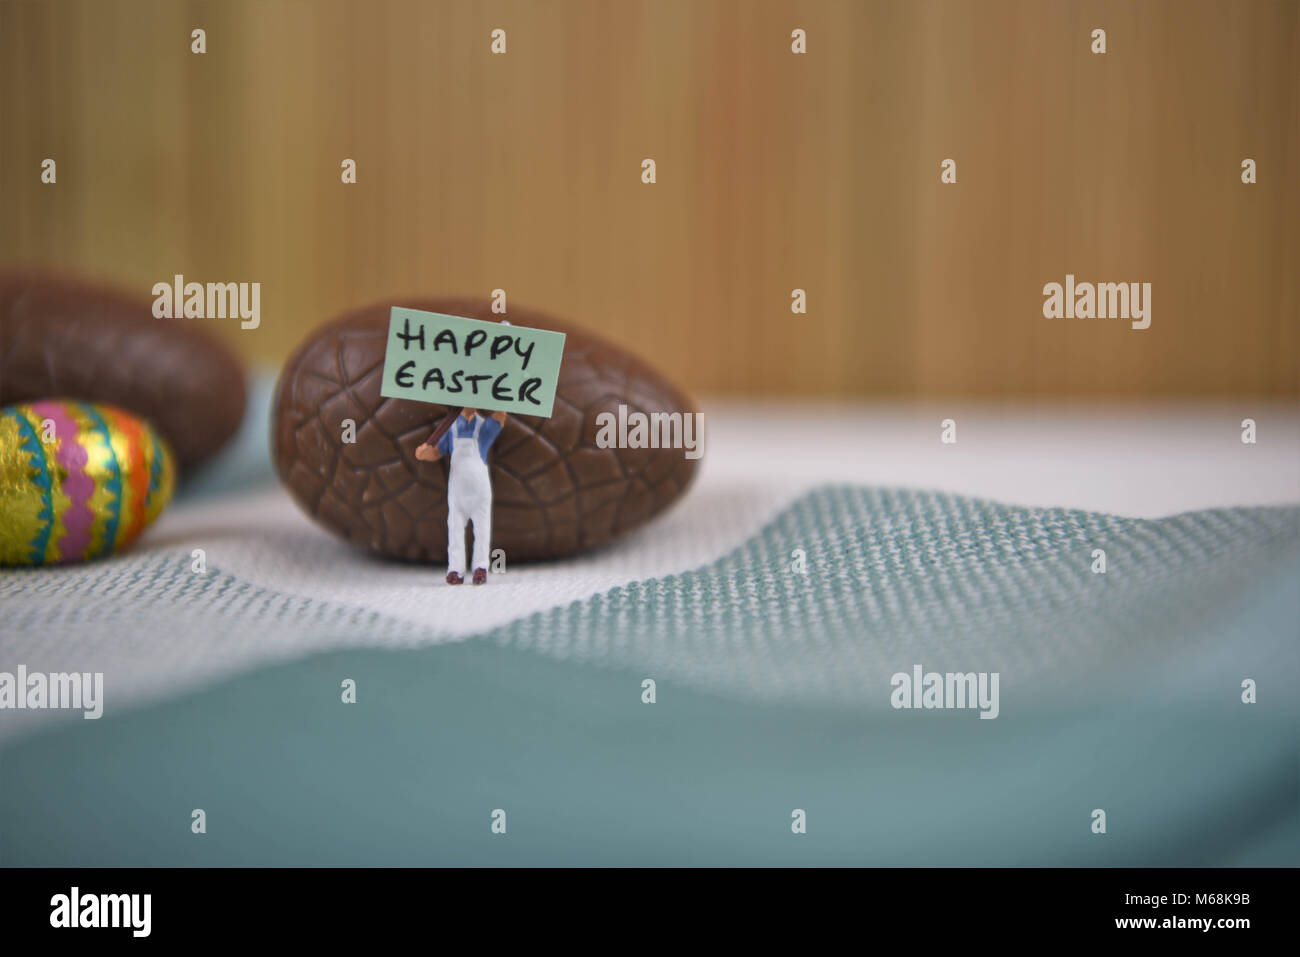 happy Easter words with chocolate Easter eggs and cute miniature person figurine Stock Photo